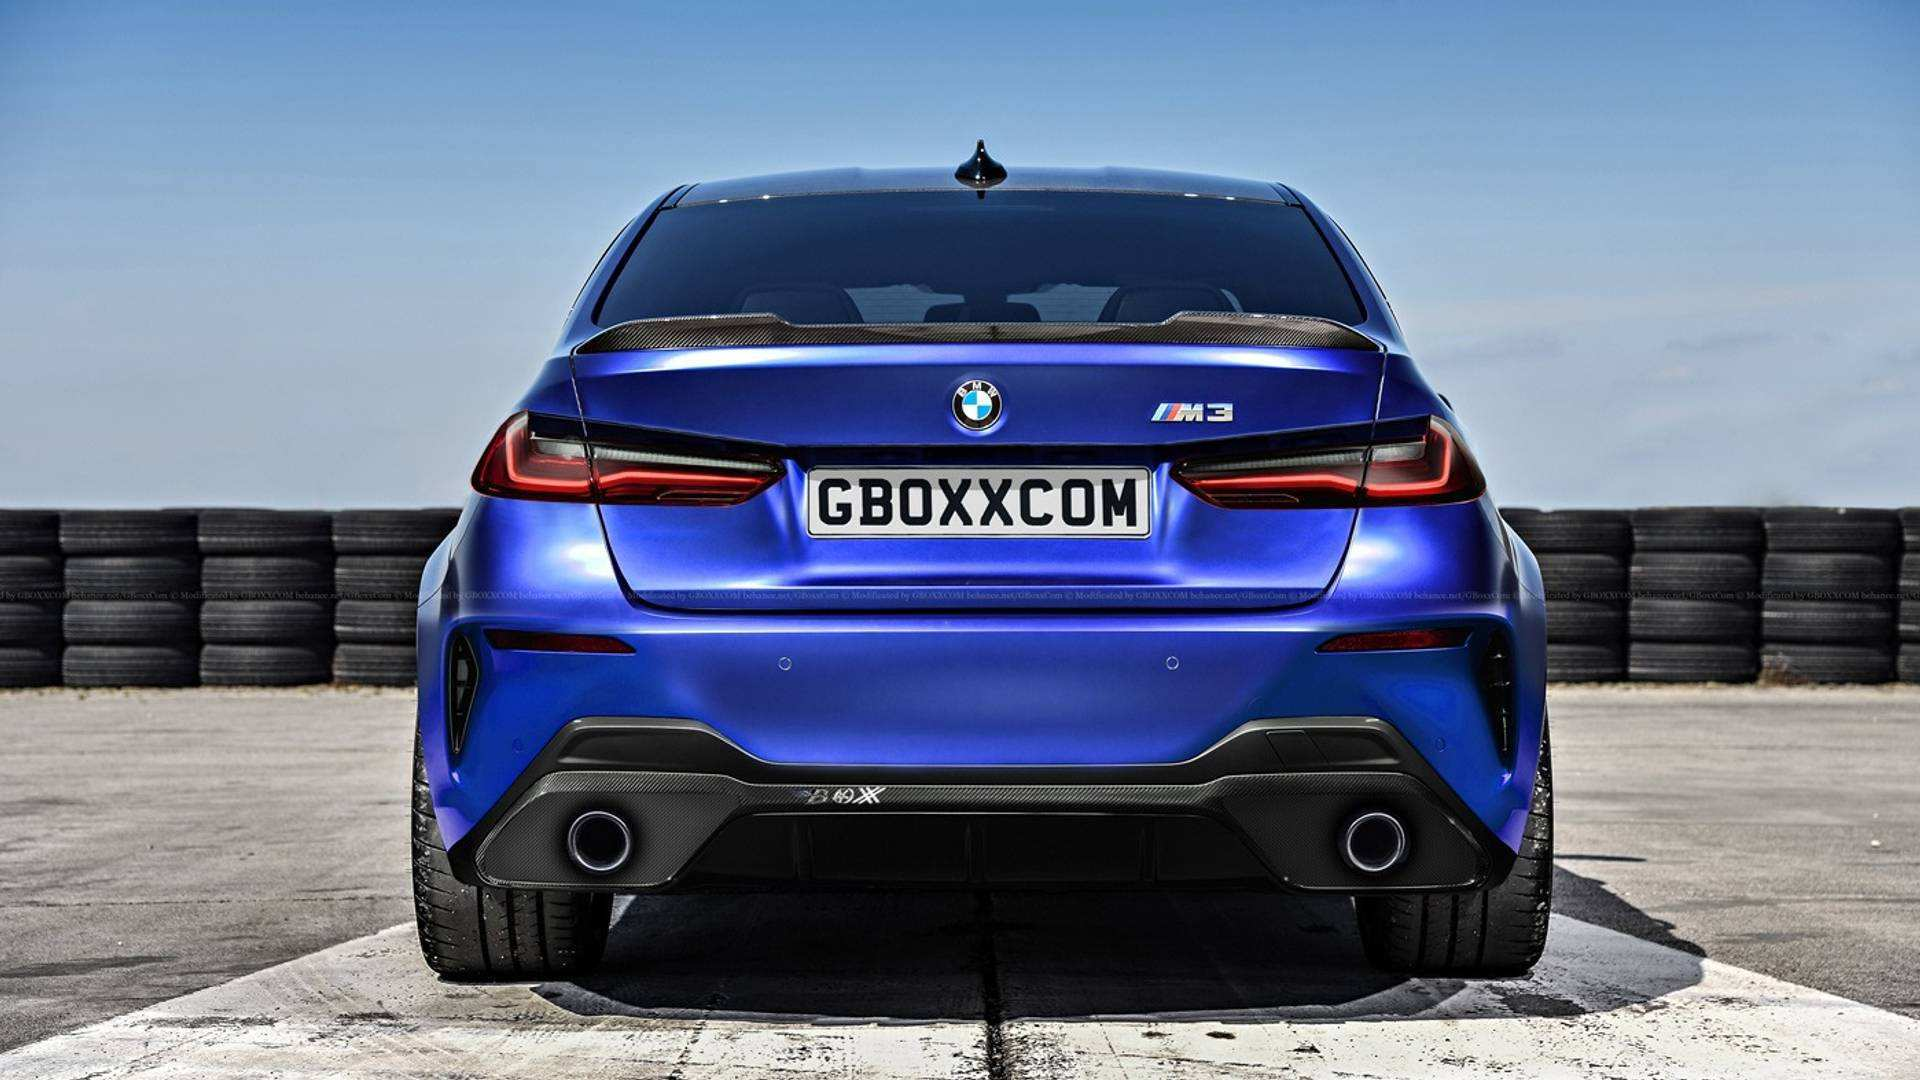 42 The 2020 BMW M4 All Wheel Drive Price Design And Review